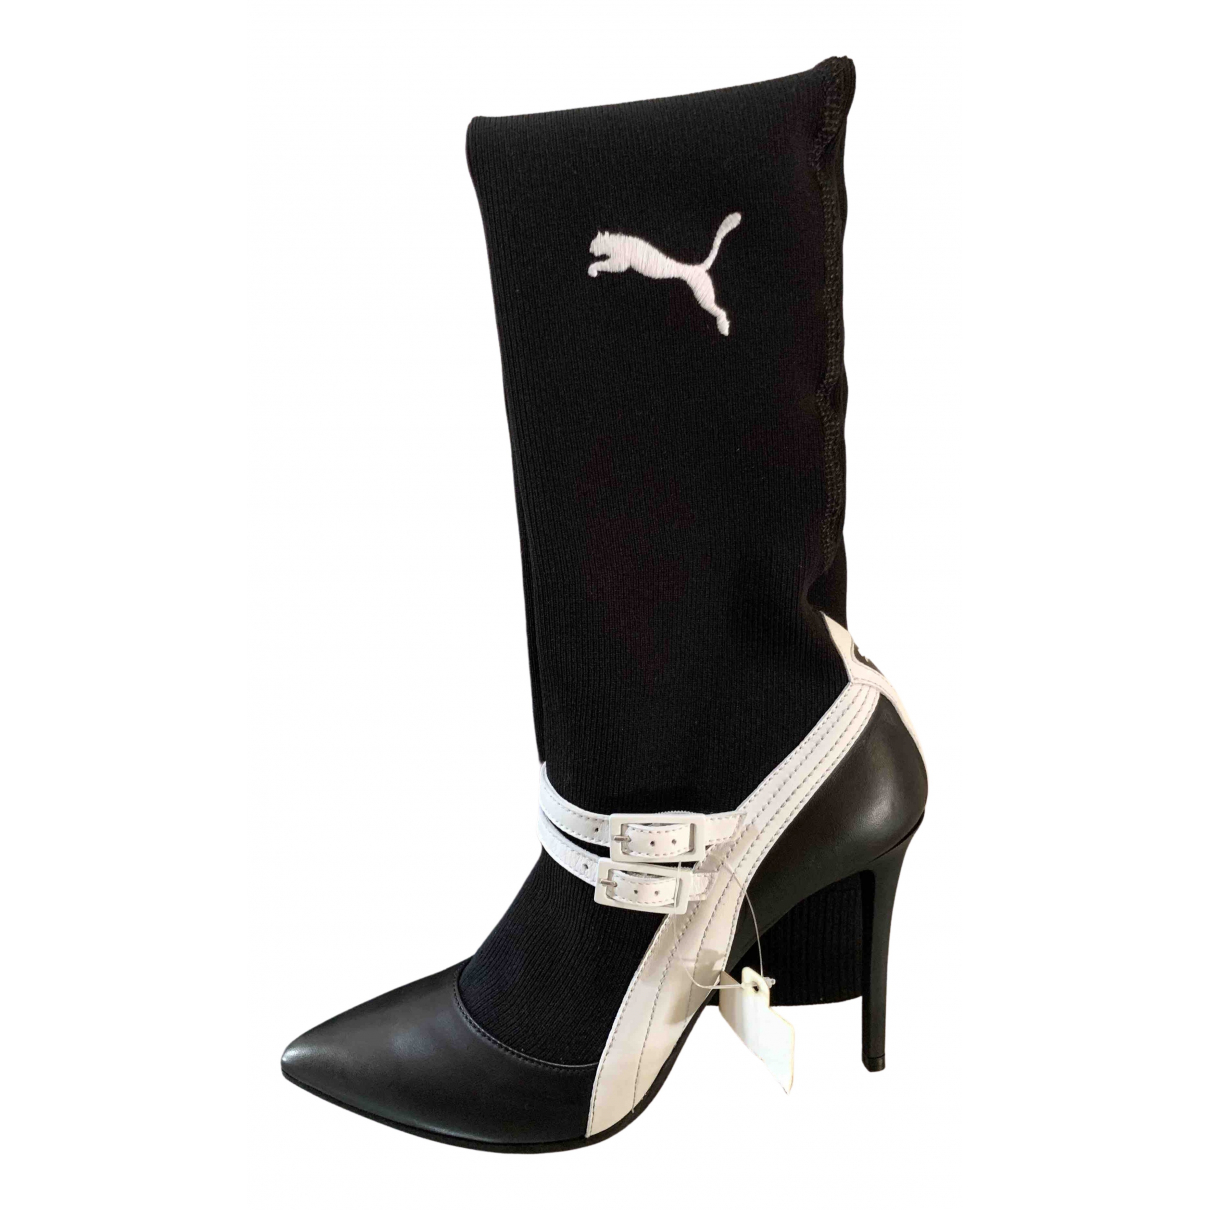 Puma \N Black Leather Boots for Women 6 UK